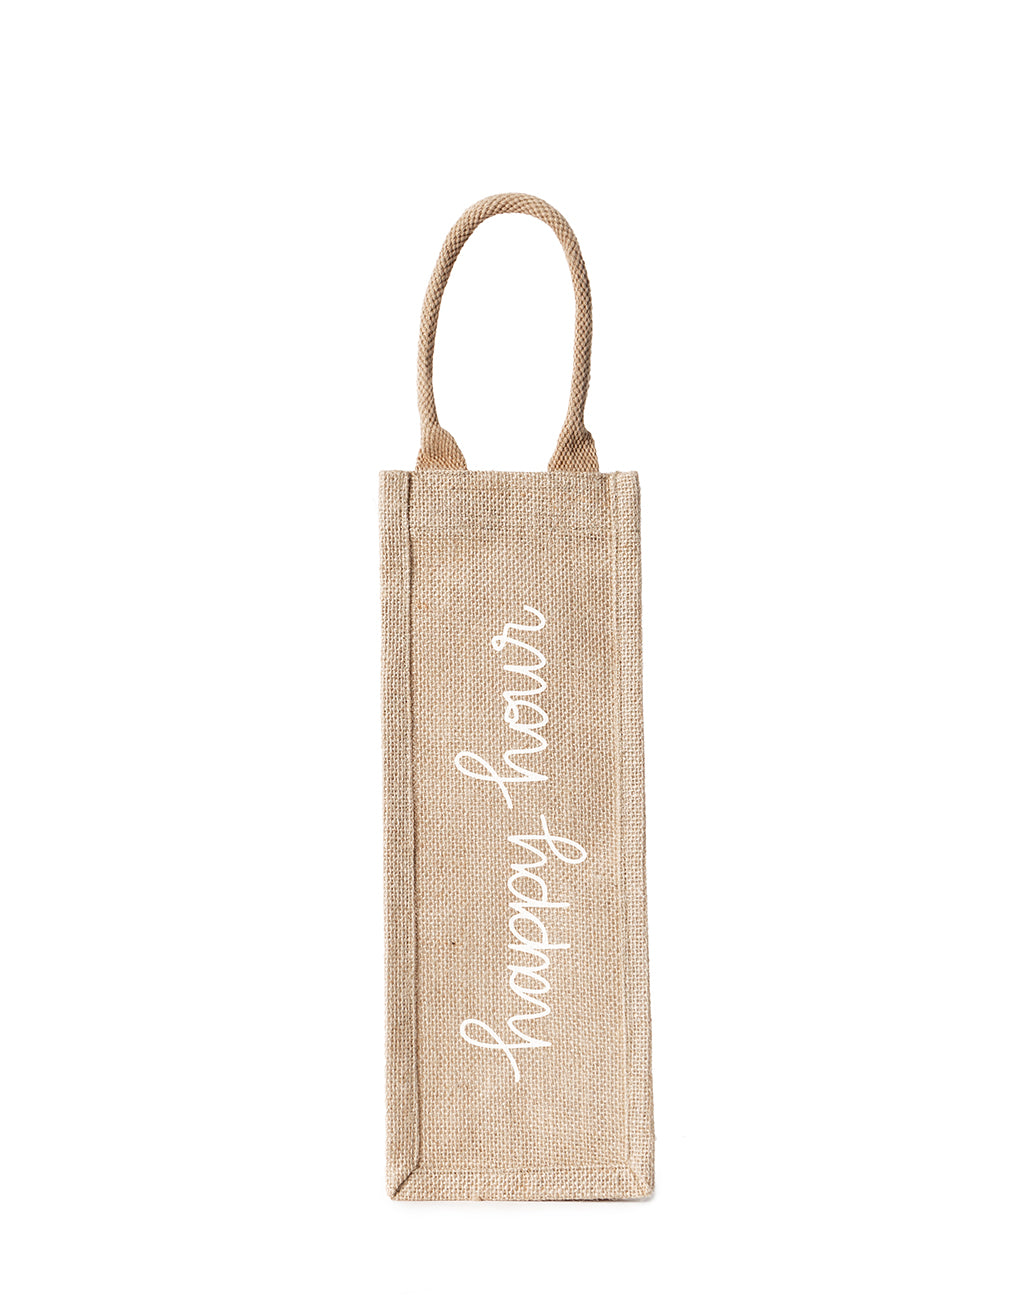 Happy Hour Reusable Wine Tote In White Font | The Little Market